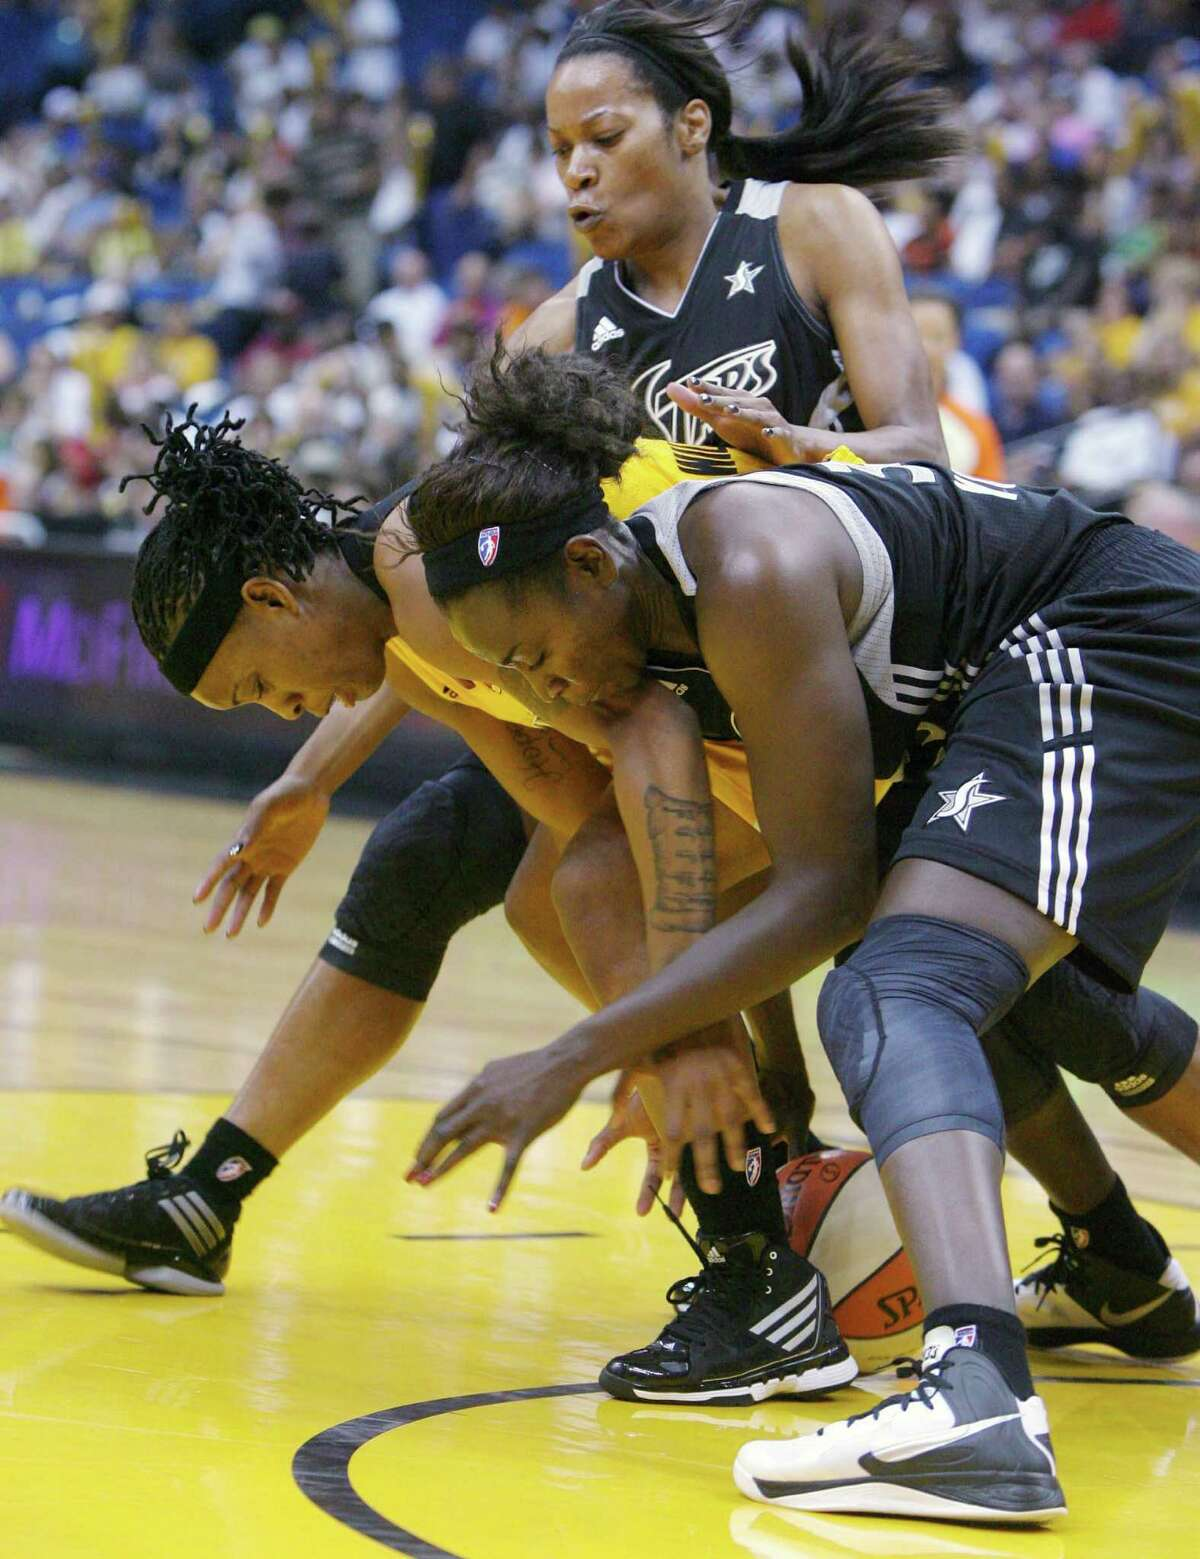 Tulsa Shock's Riquna Williams and San Antonio Silver Stars' Sophia Young, front, scramble for the ball during a WNBA basketball game Saturday, May 19, 2012, in Tulsa, Okla. (AP Photo/Tulsa World, James Gibbard) ONLINE OUT TV OUT TULSA OUT